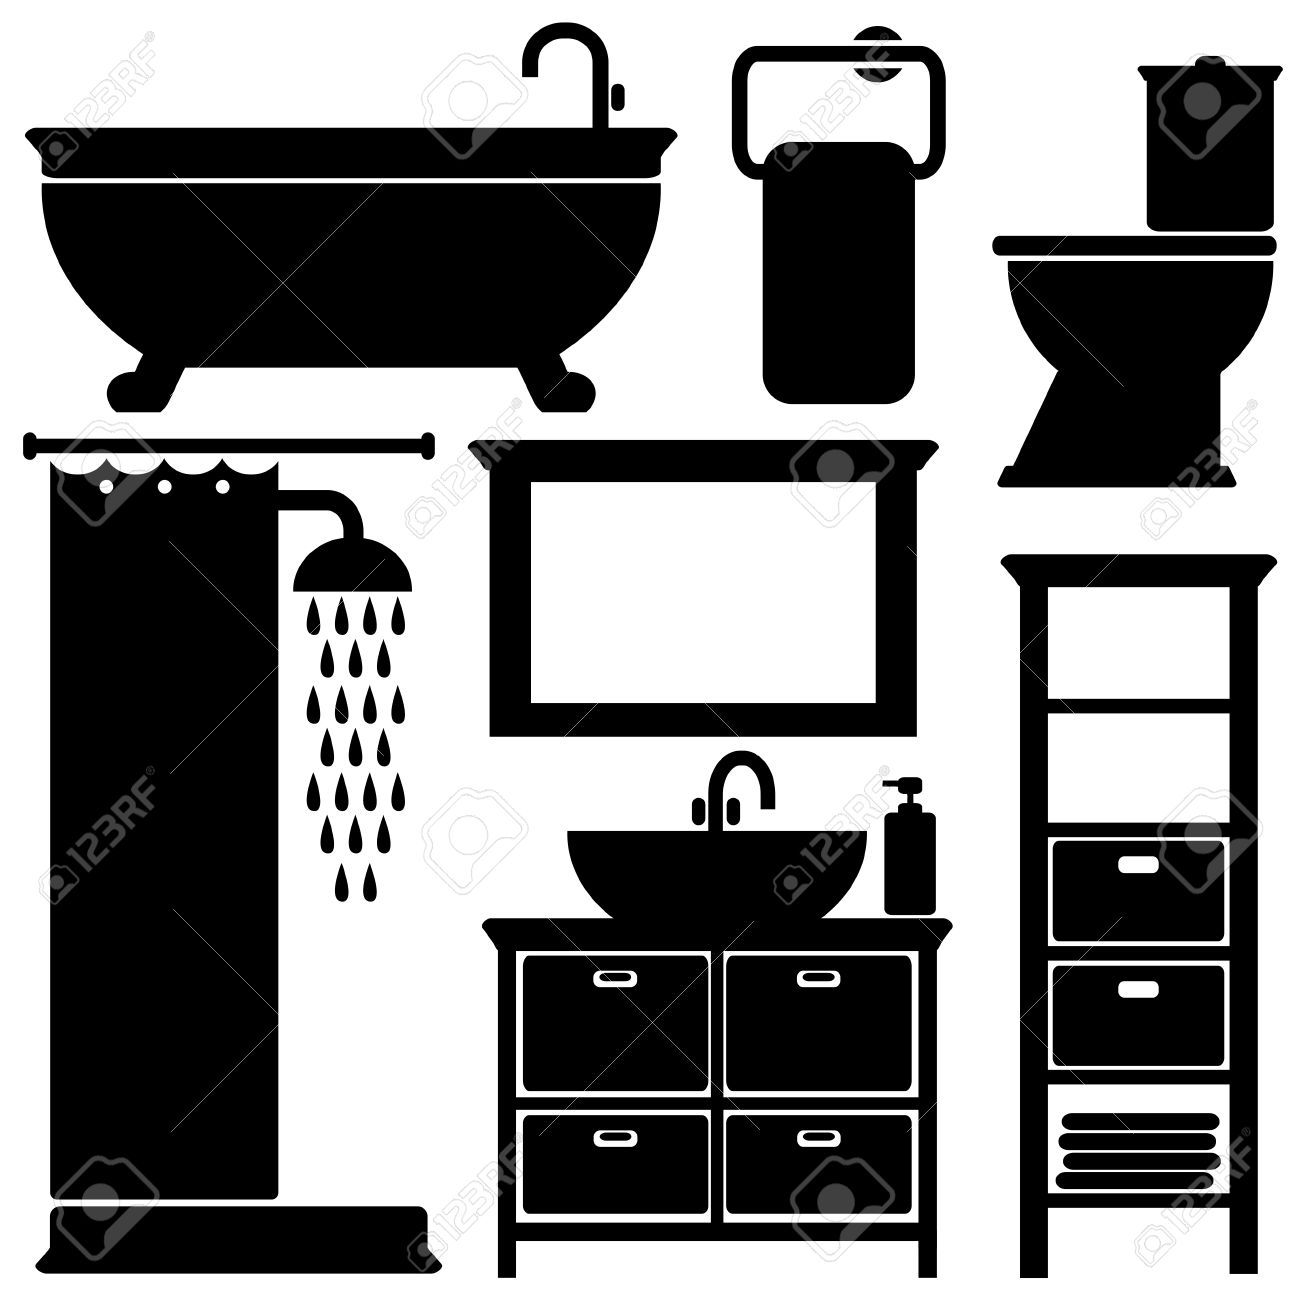 Bathroom Clip Art Black And White: Free Bathroom Silhouette Clipart